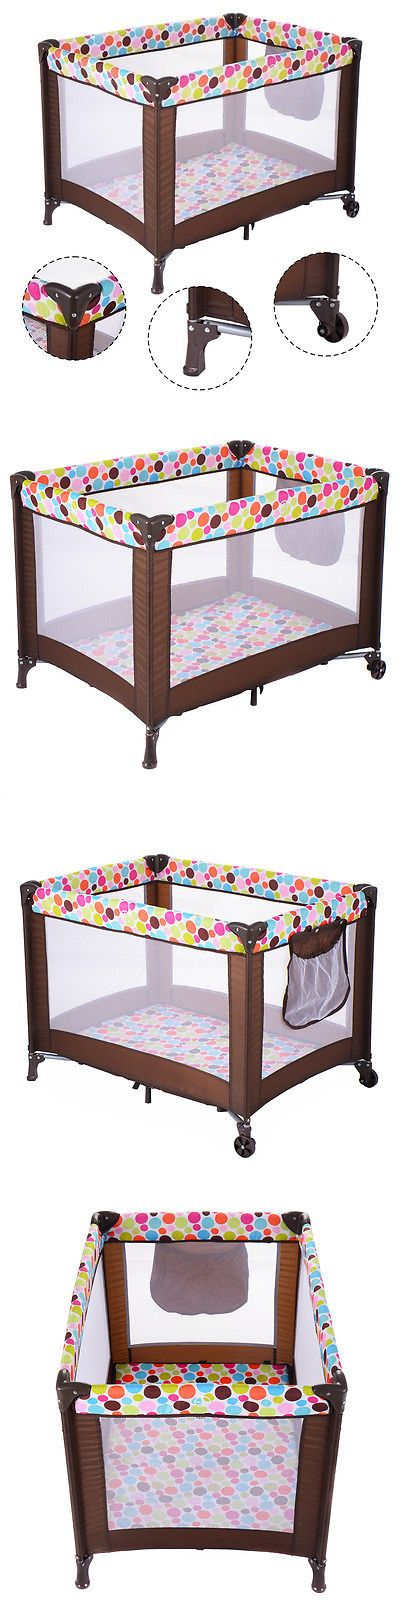 Baby Gear 100223: Playard Baby Crib Bassinet Travel Portable Bed Playpen Infant Toddler Foldable -> BUY IT NOW ONLY: $42.99 on eBay!